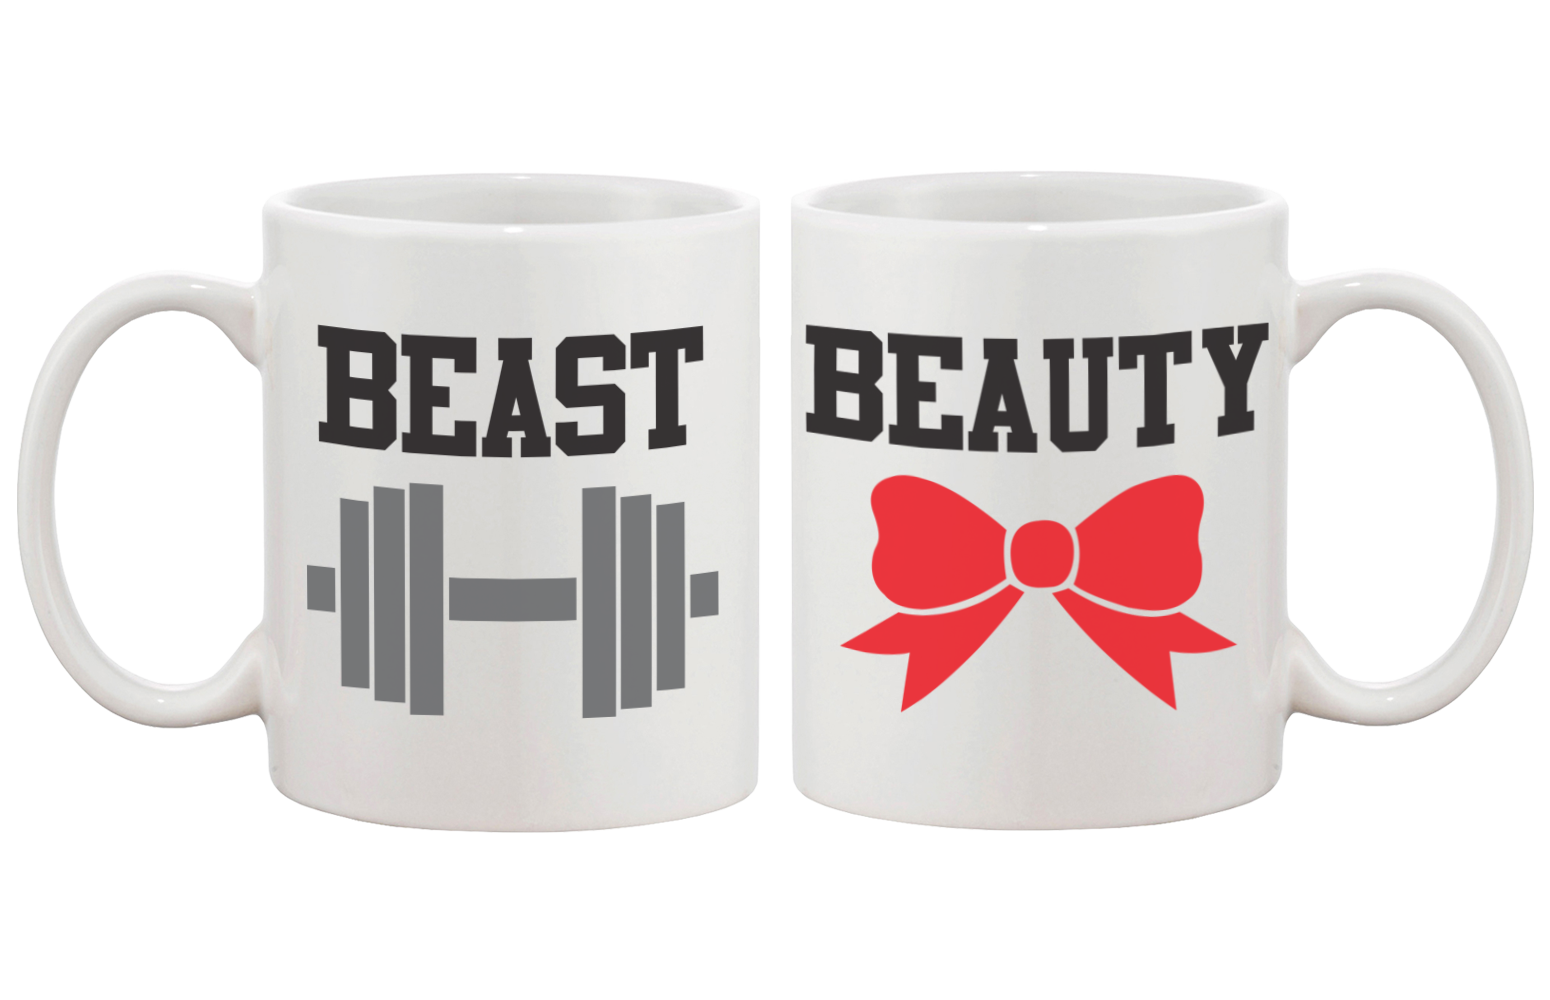 Cute Gifts For Couples Beauty And Beast Coffee Mugs 365 In Love